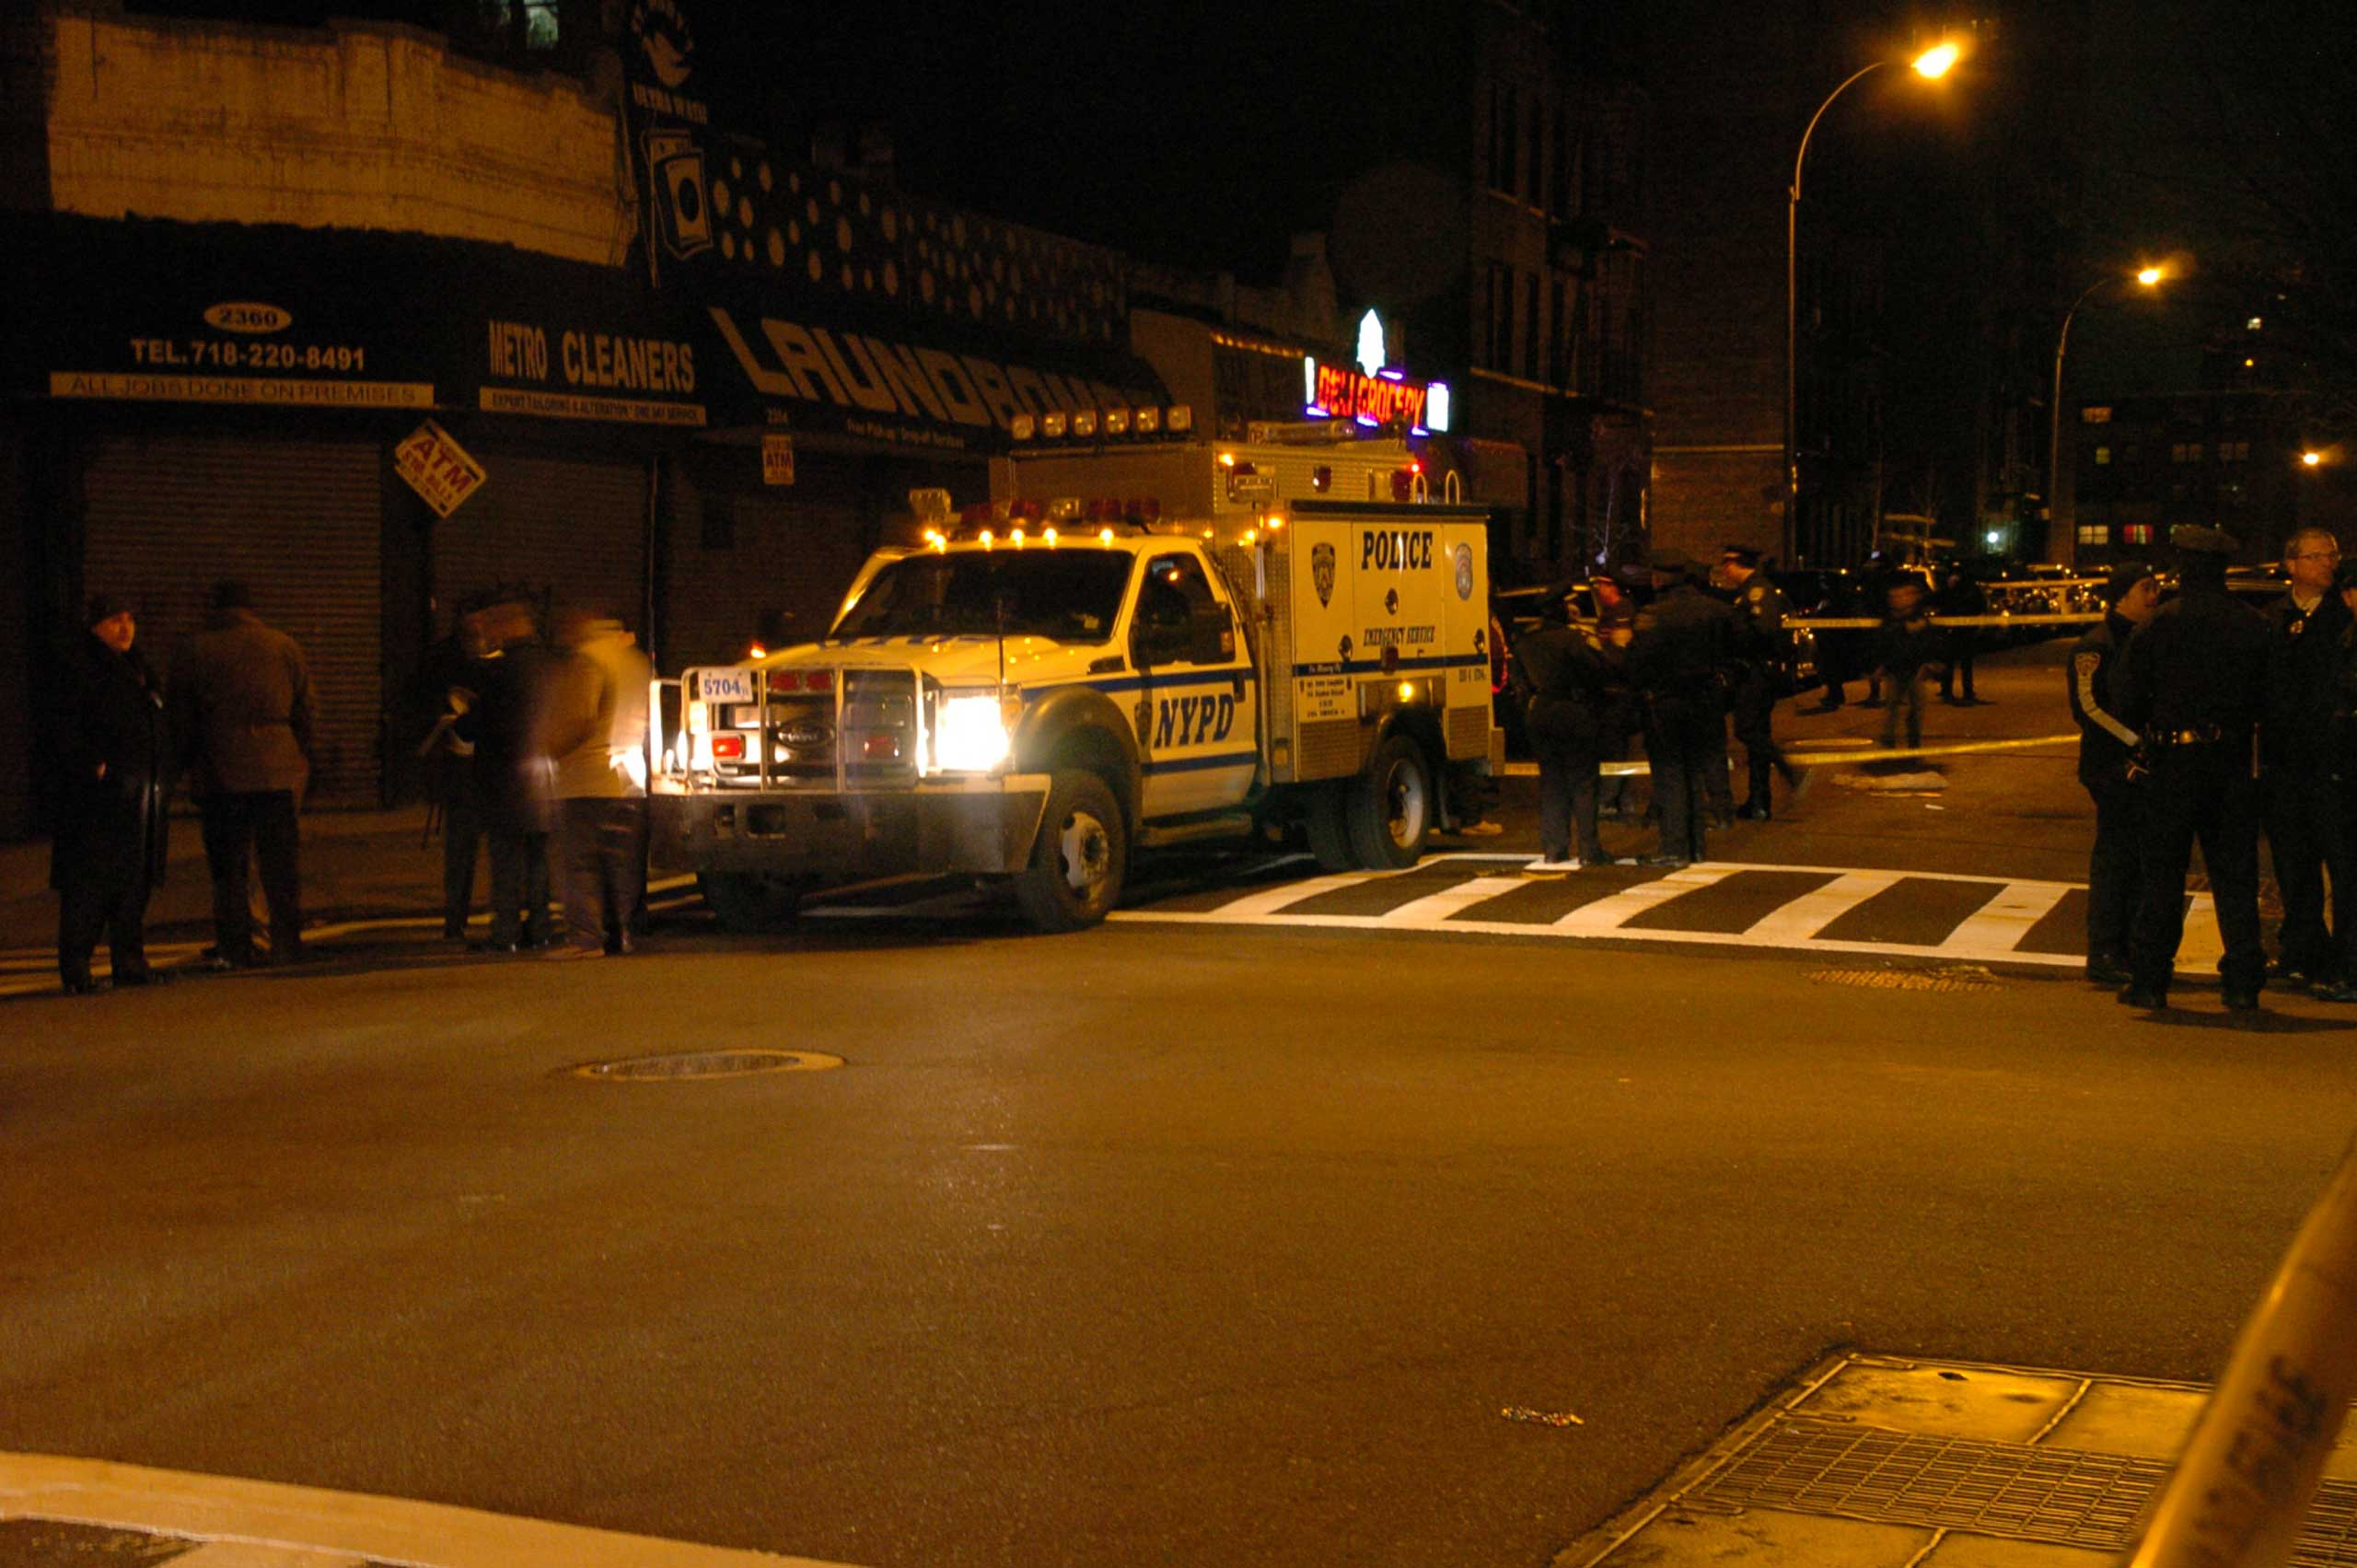 Police officers patrol the crime scene where two NYPD officers were shot in the Bronx borough of New York City, early on Jan. 6, 2014.